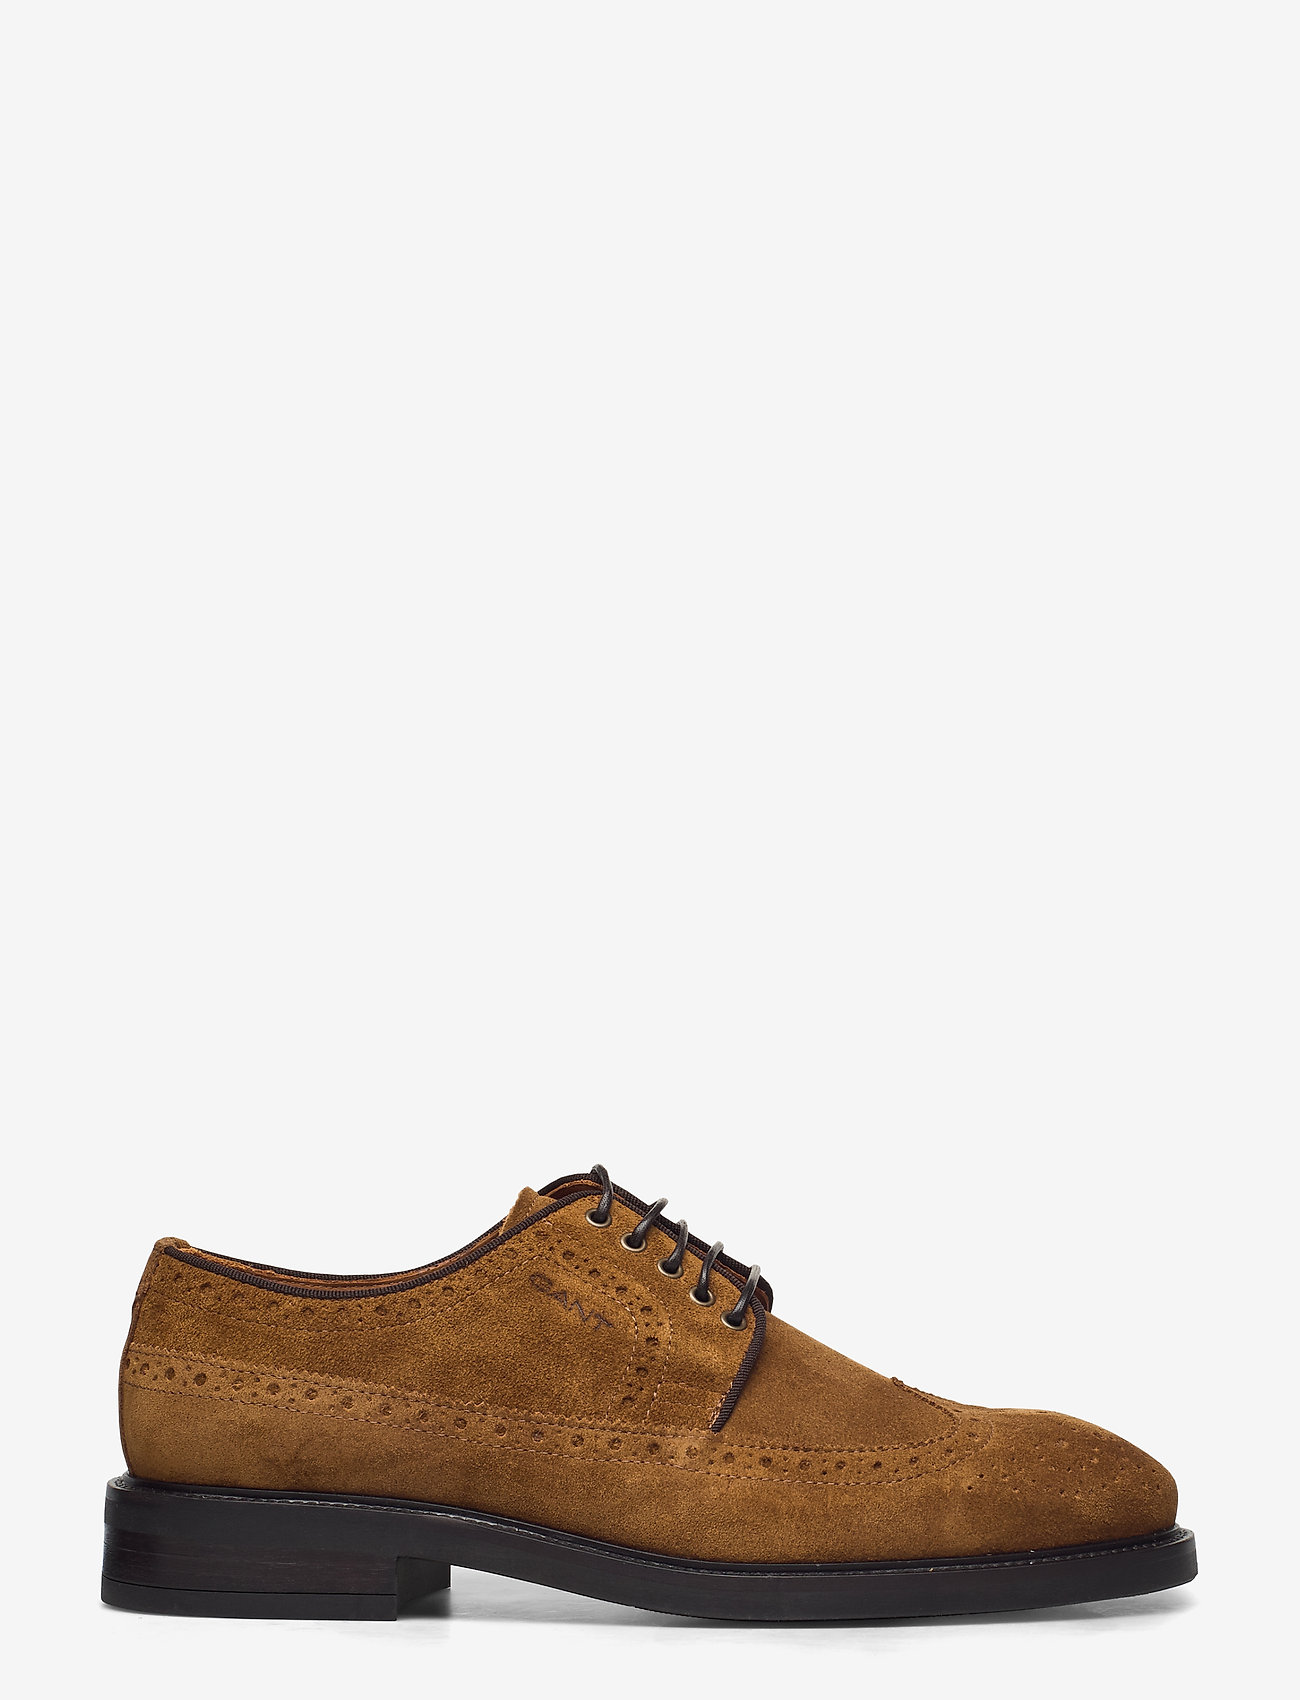 GANT - Flairville Low laceshoes - laced shoes - tobacco brown - 1